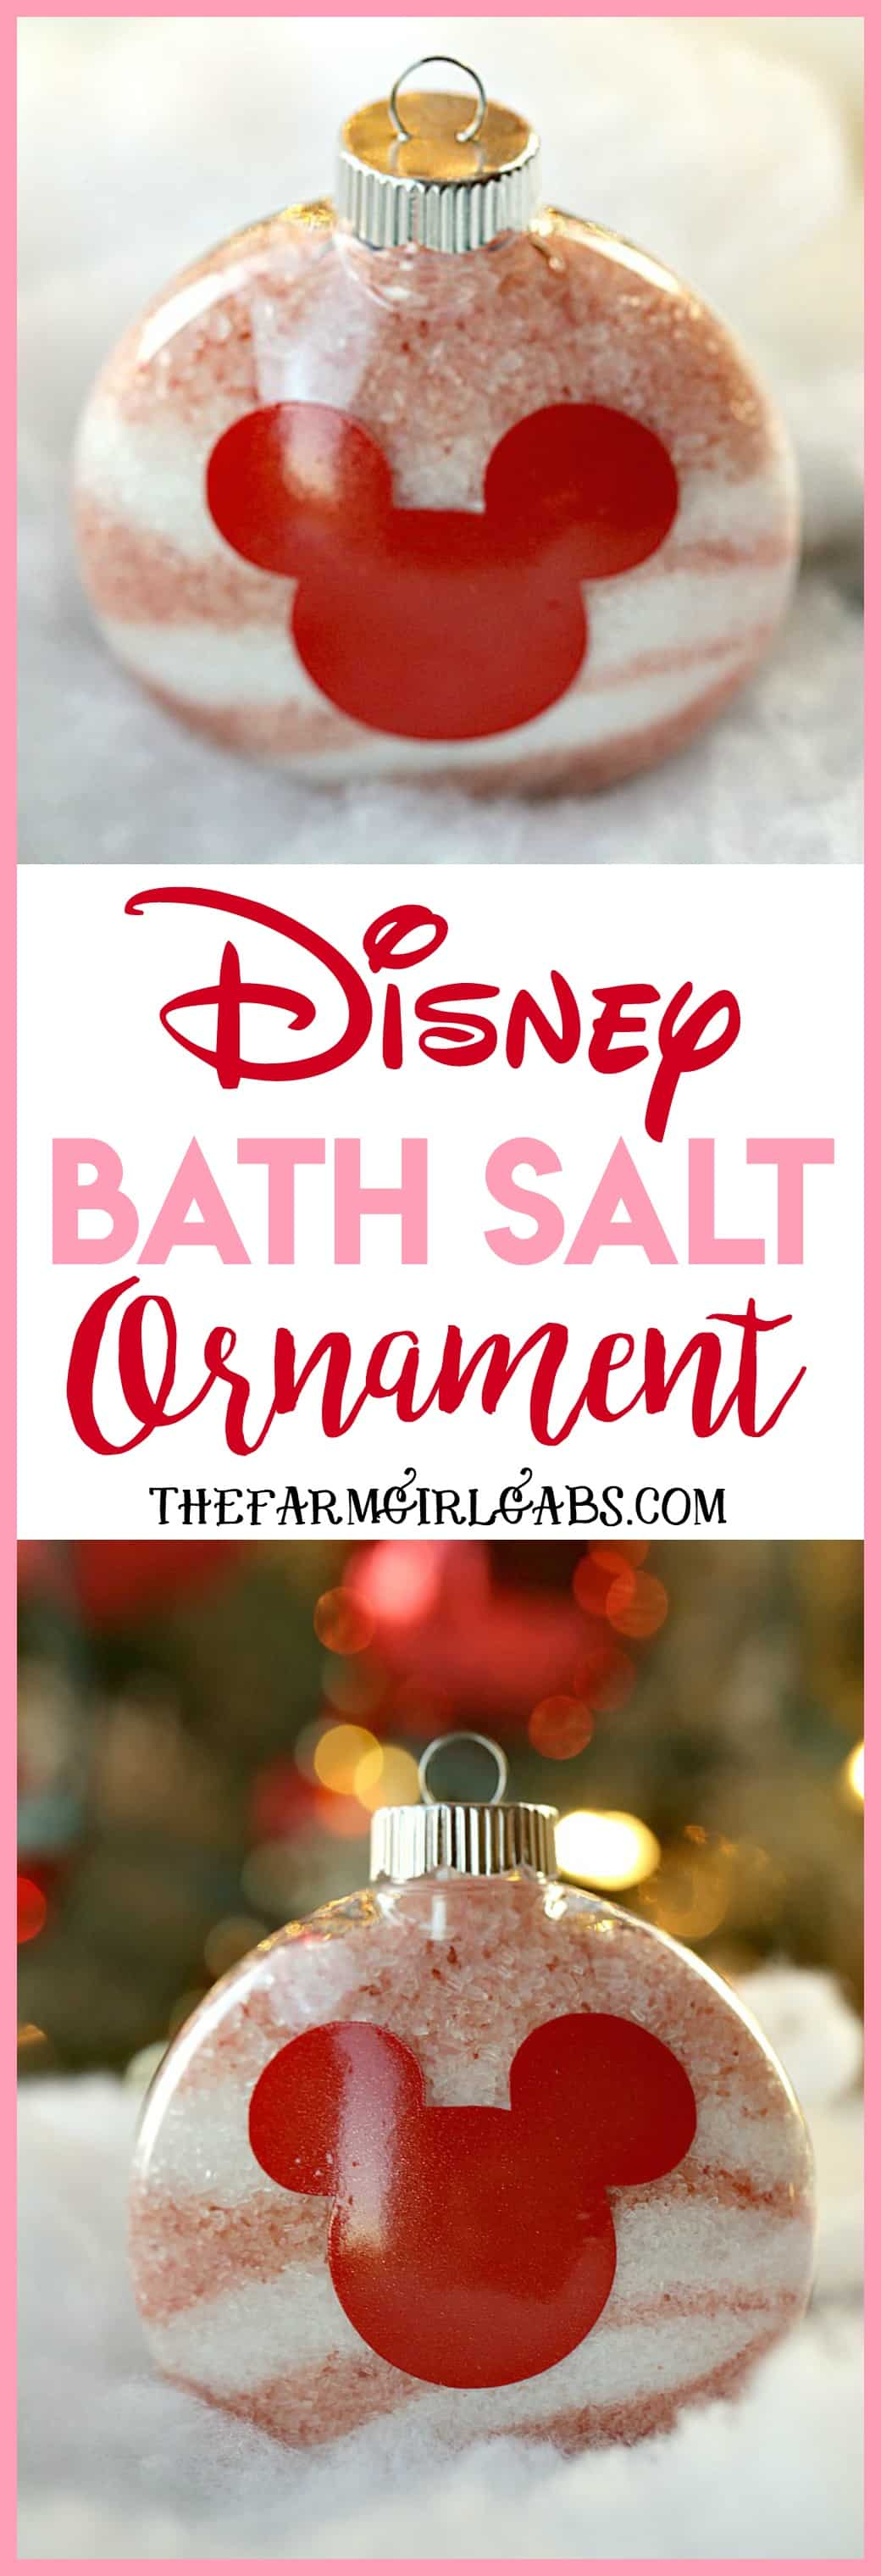 Give the gift of pampering the Christmas. These Disney Bath Salt Ornaments are the perfect self-care gift idea for the Disney fan on your gift list. #Christmas #Crafts #EssentialOils #Disney #DisneyCraft #WaltDisneyWorld #Ornaments #DIY